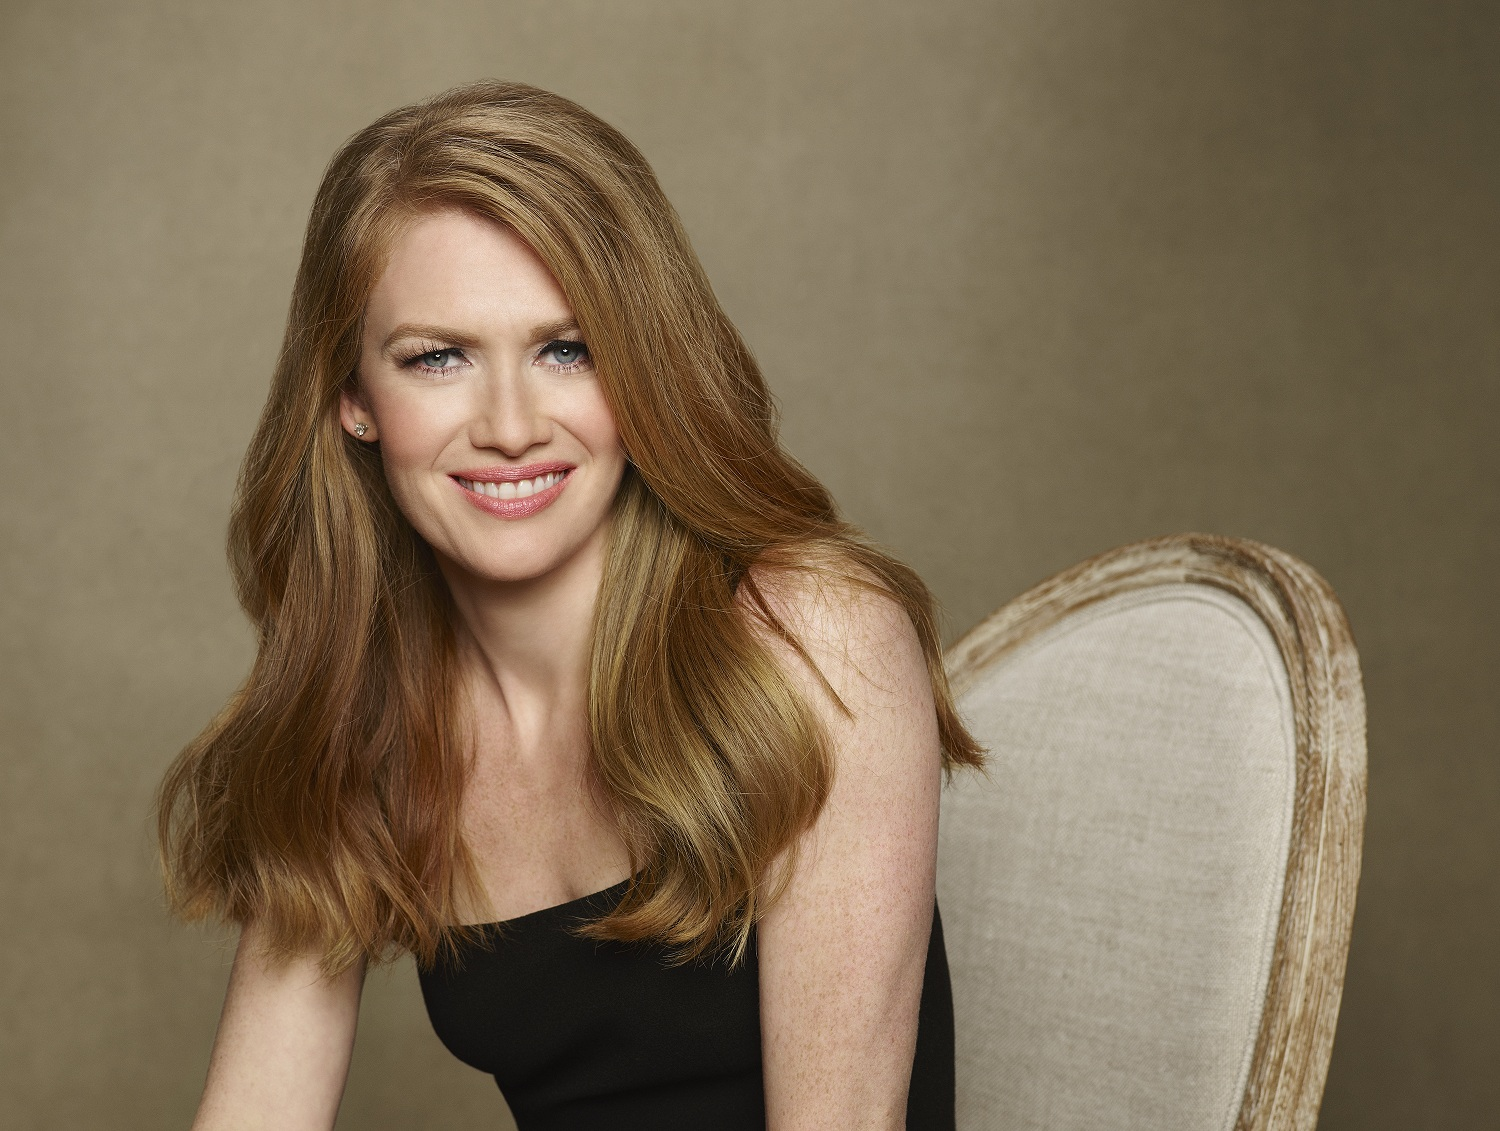 """THE CATCH - ABC's """"The Catch"""" stars Mireille Enos as Alice. (ABC/Craig Sjodin)"""